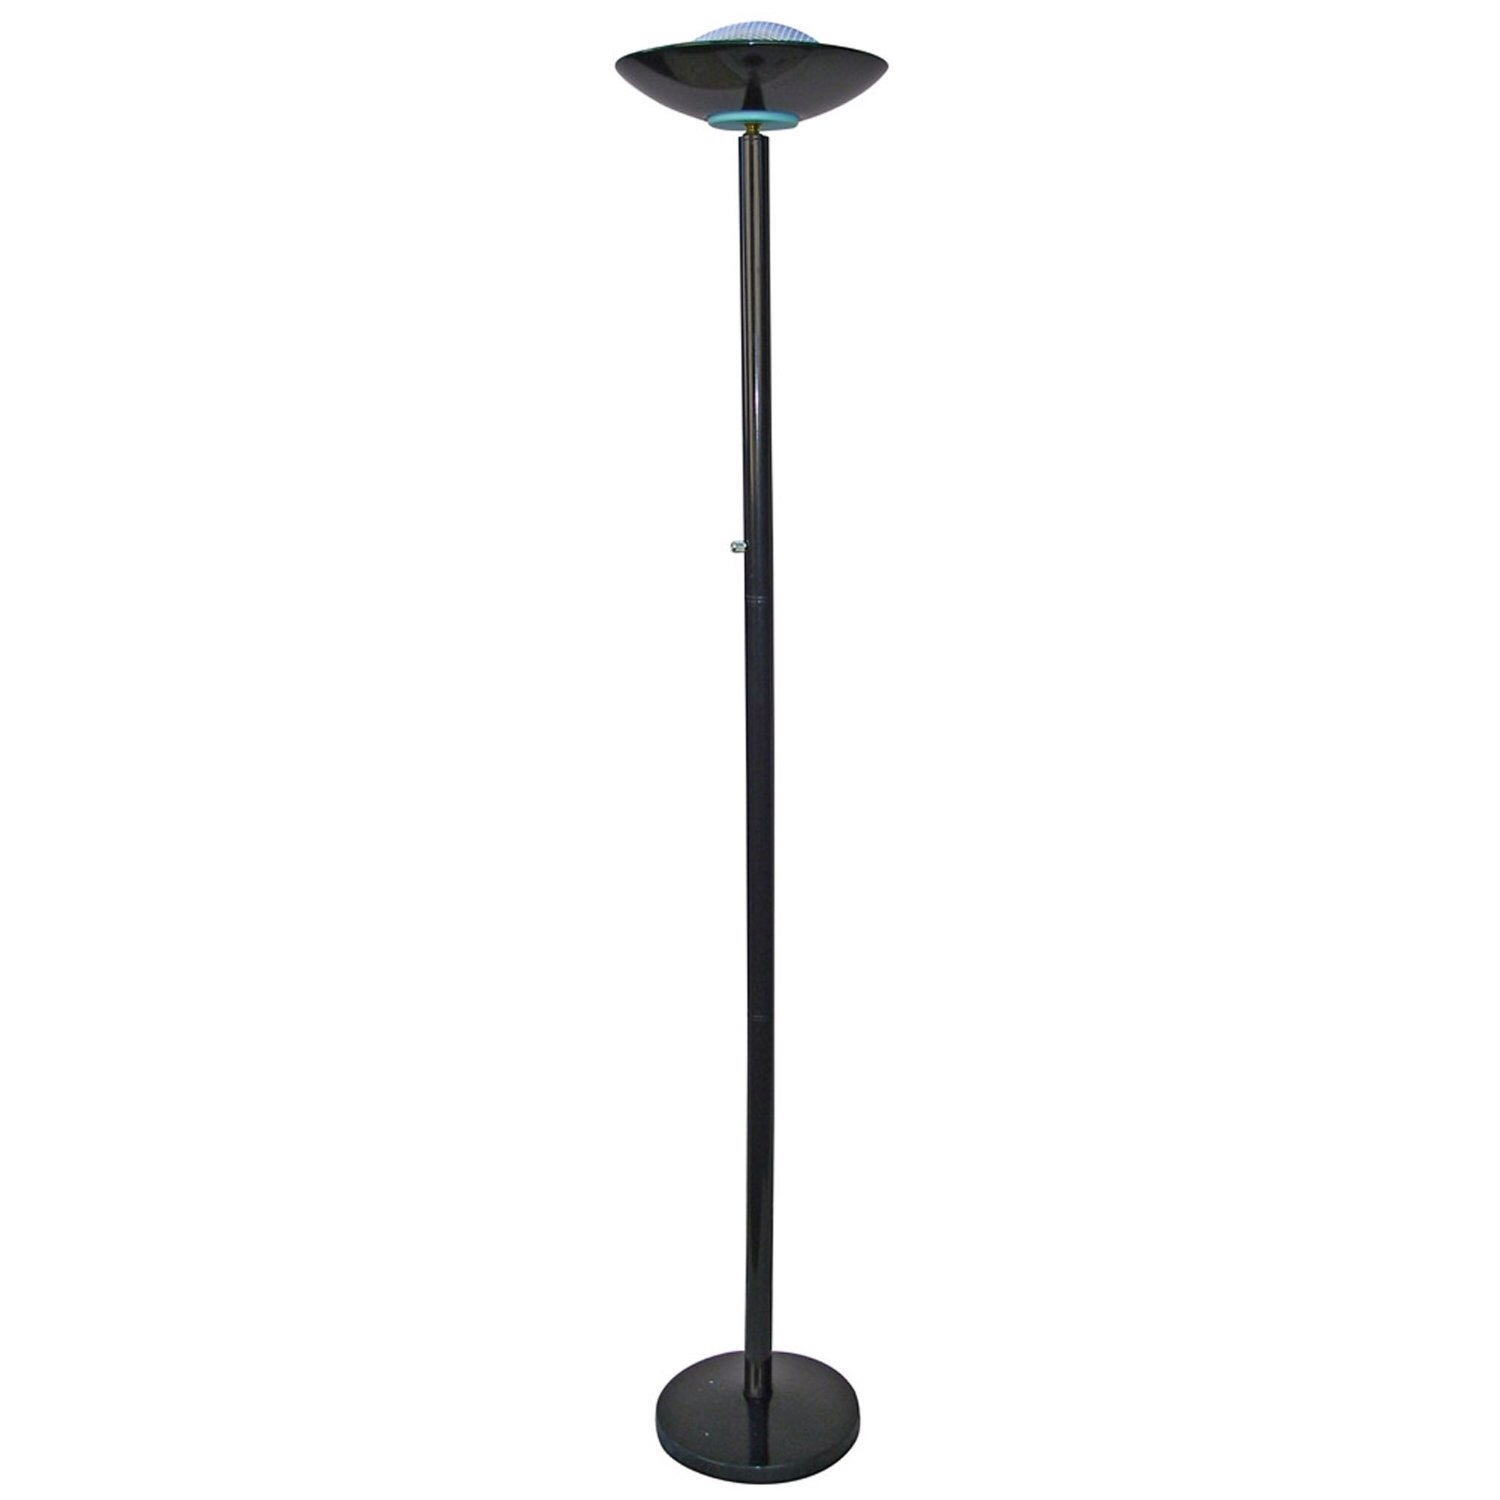 Moving floor lamps mcgregor movings insiders guide on moving target and walmart sell millions of these cheap floor lamps and beginning movers and do it yourselfers break these every day aloadofball Images